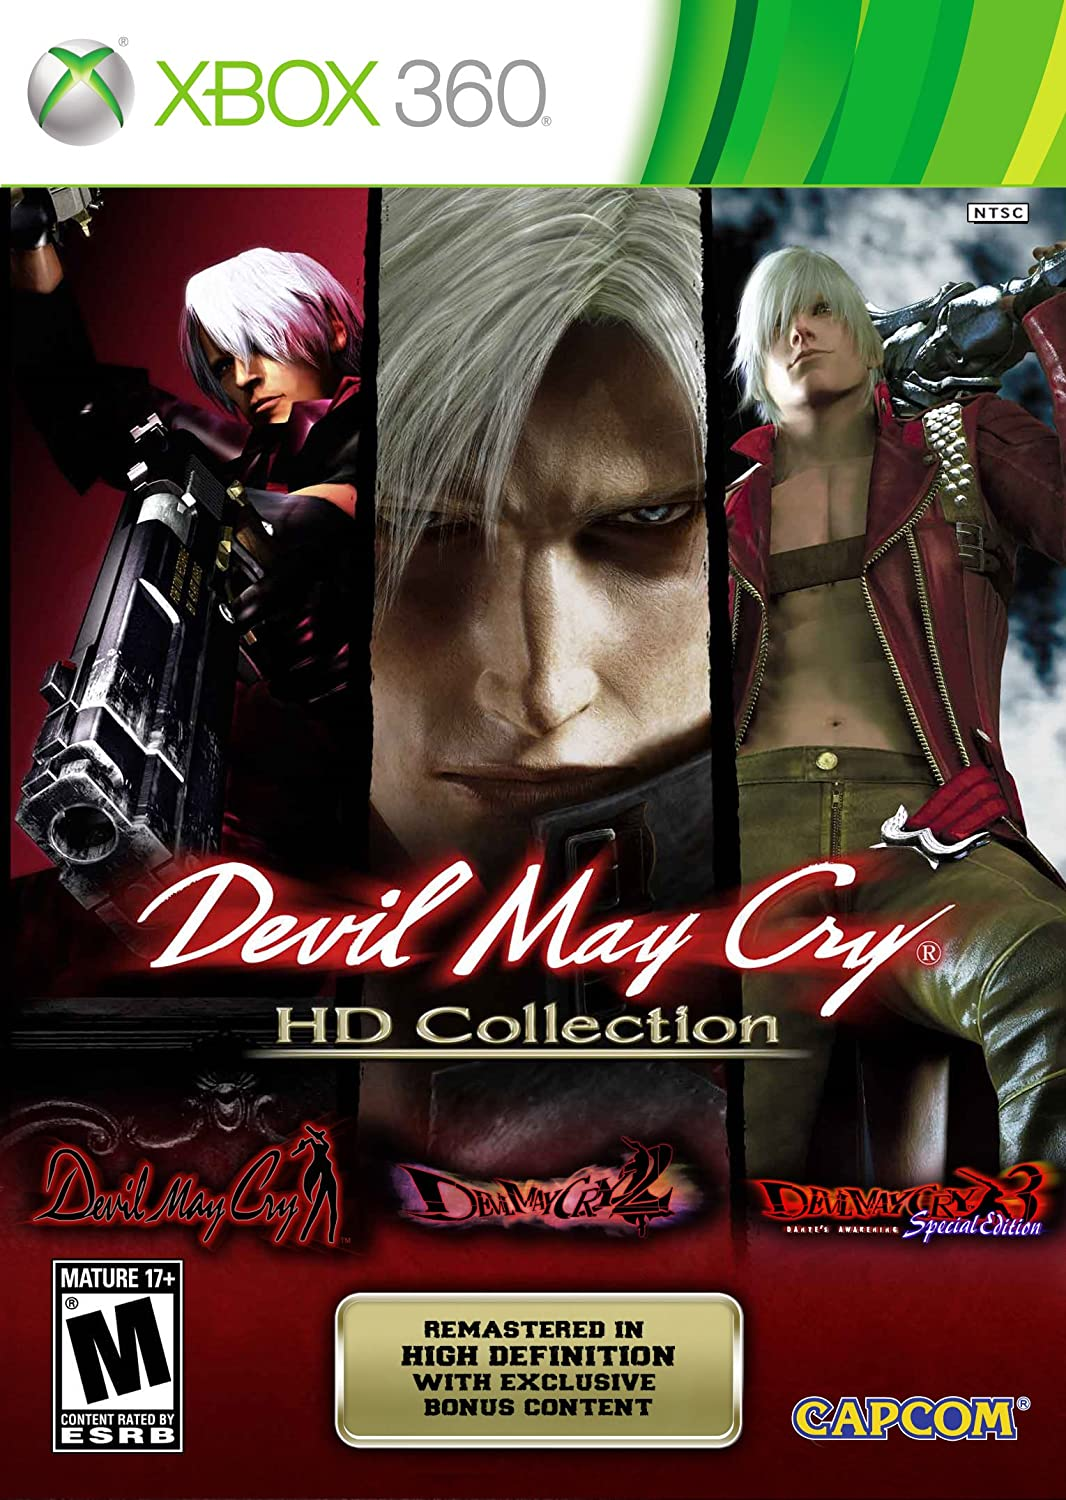 Amazon.com: Devil May Cry Collection - Xbox 360: Video Games